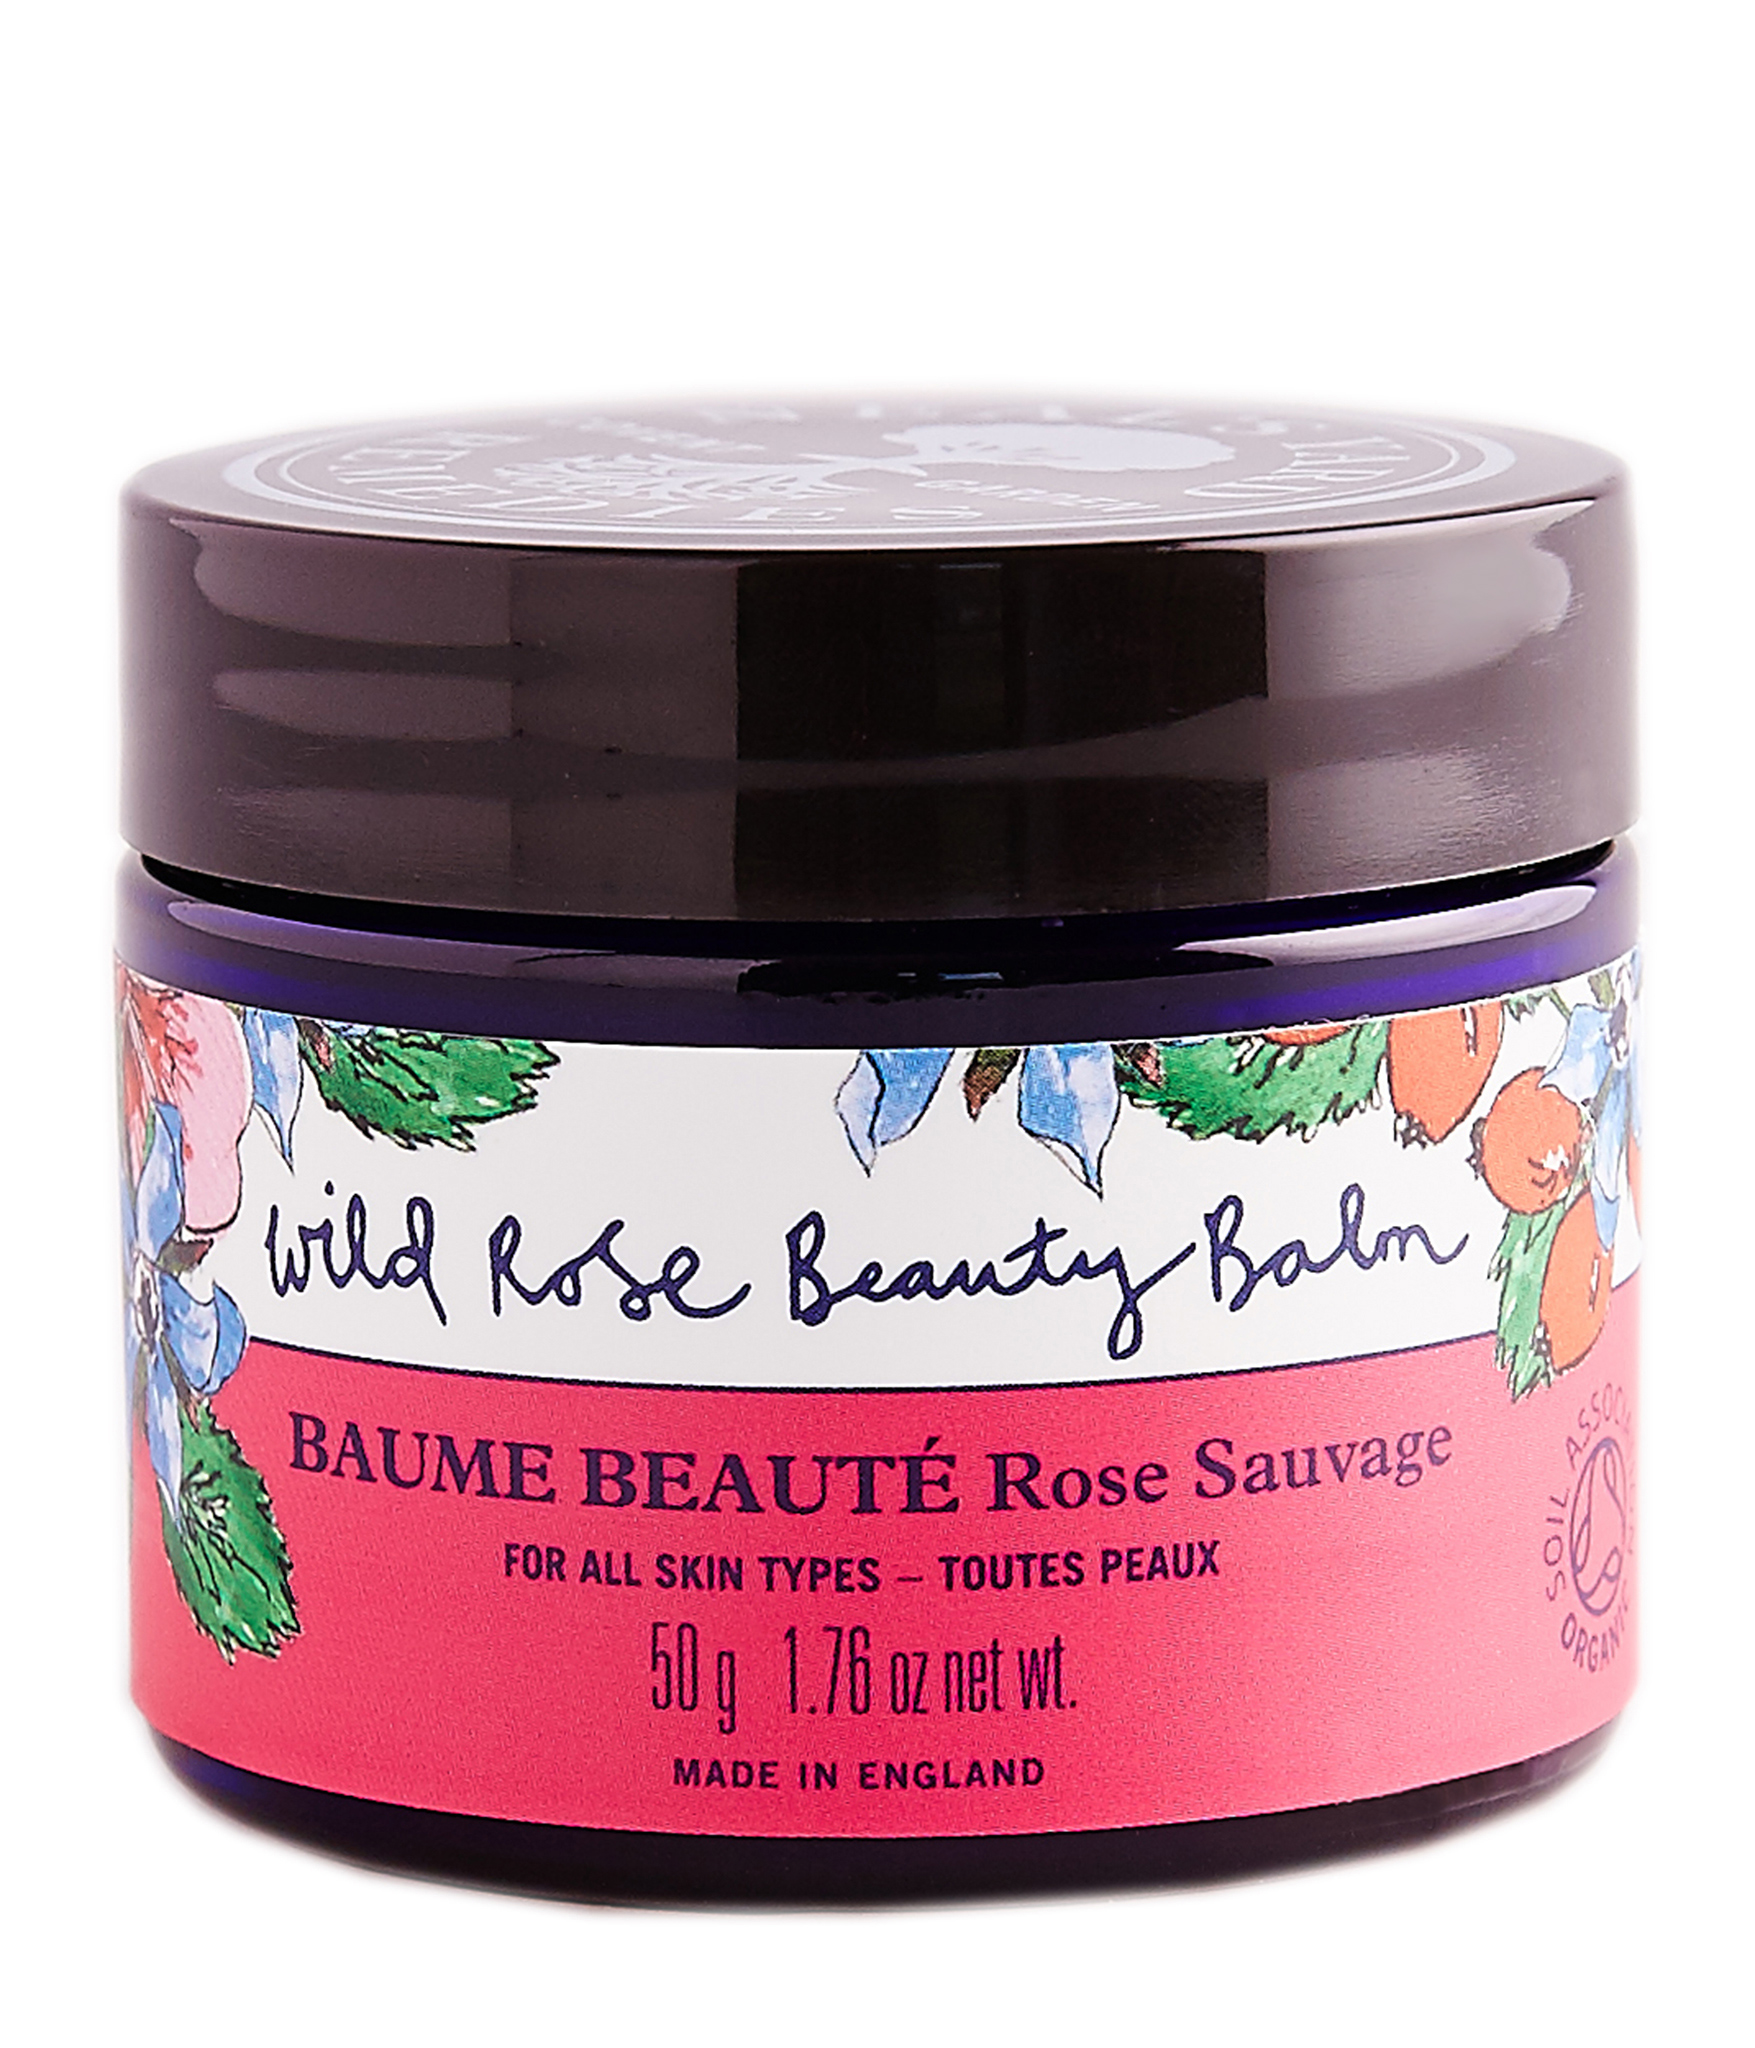 This BALM is magic. It heals, it soothes, it feels and smells incredible. I can't get enough!